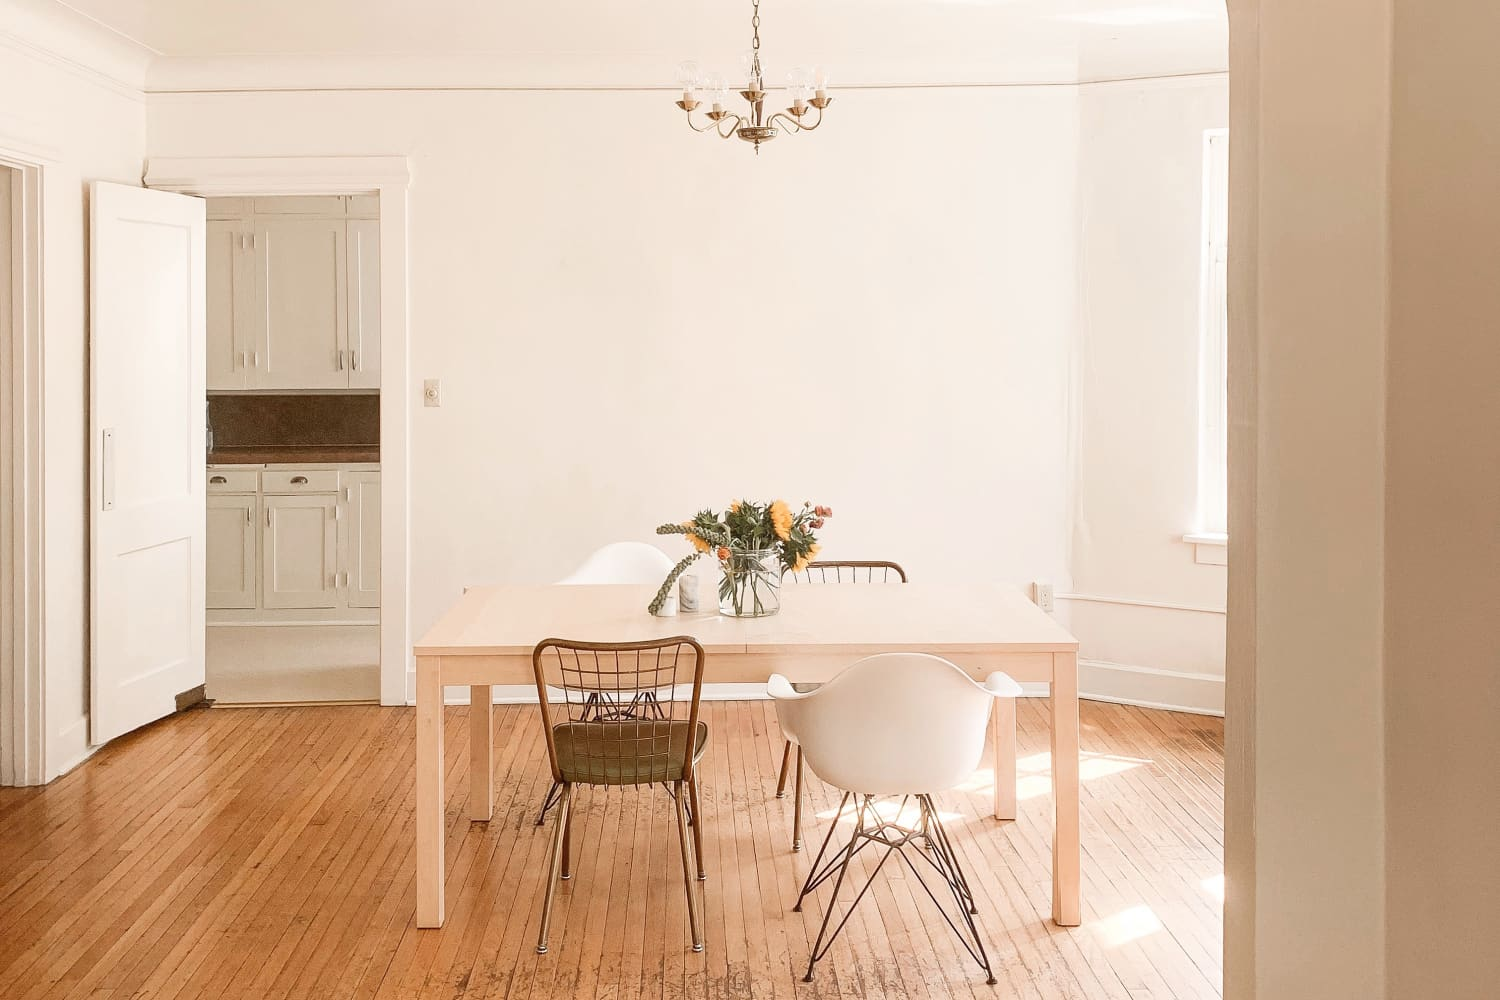 This Sparse But Stylish Scandi-Inspired Home Is Proof of Just How Soothing Minimalism Can Be